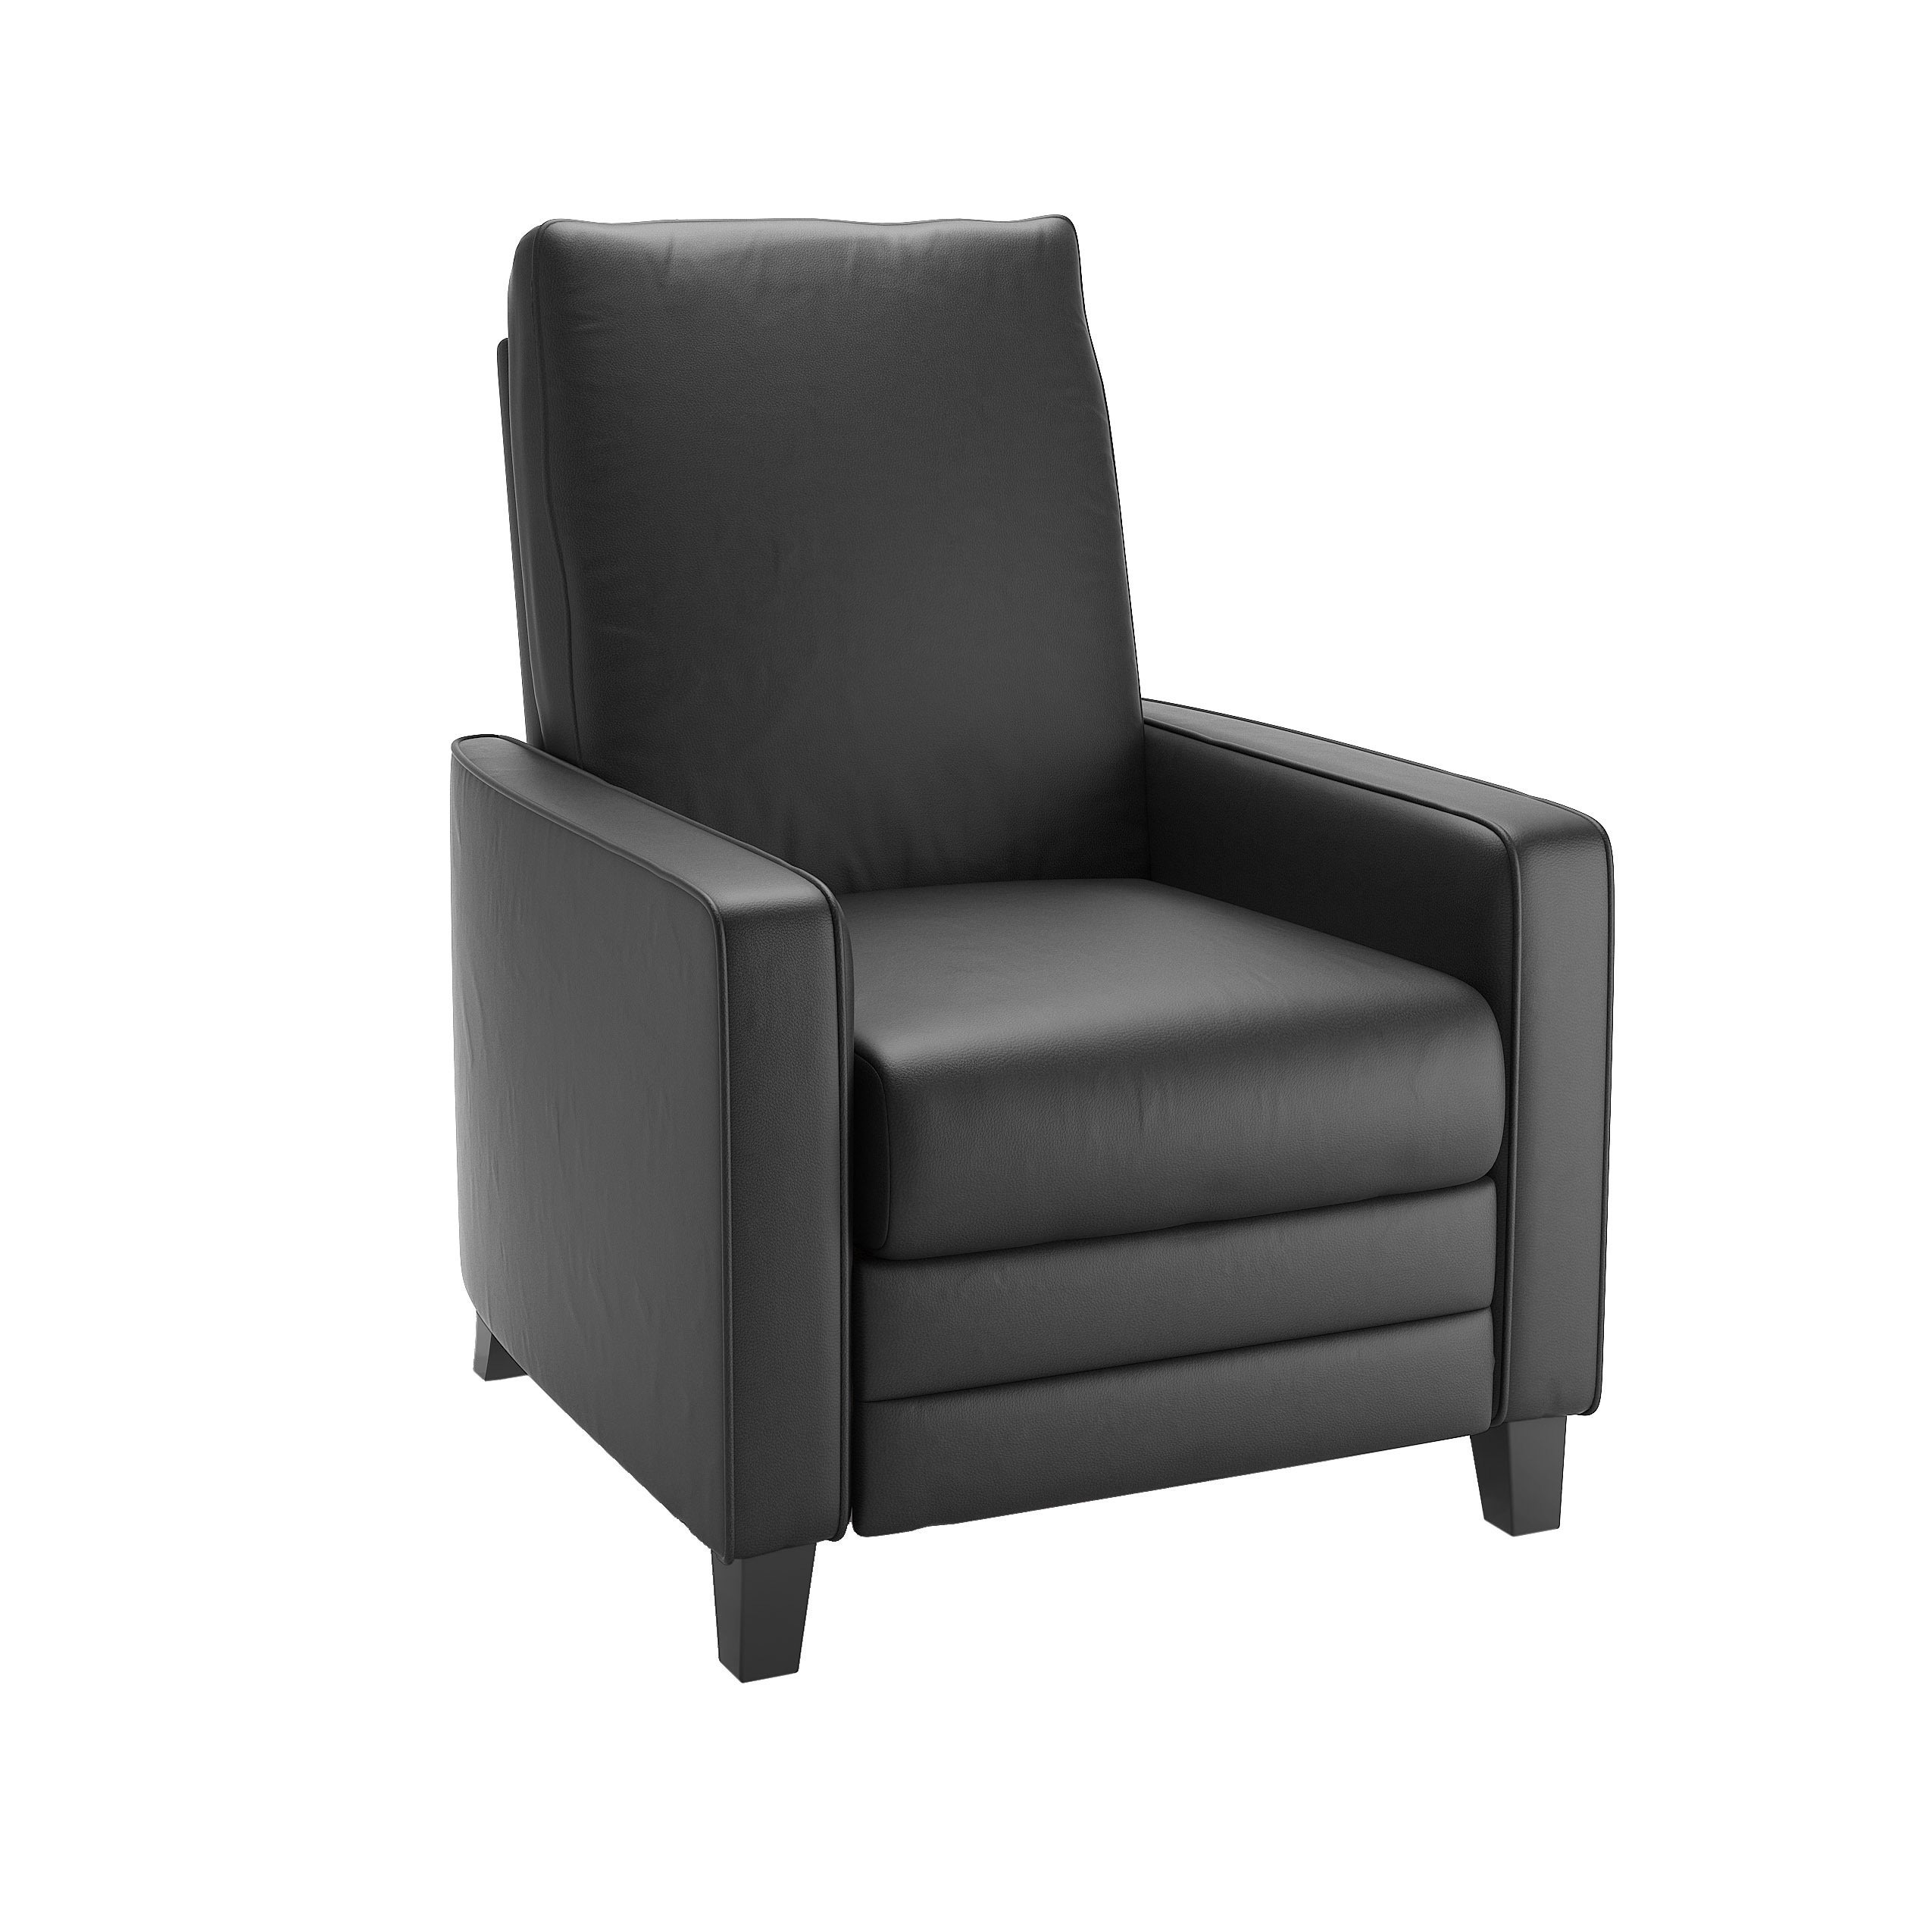 Amazing CorLiving Kelsey Bonded Leather Modern Recliner Armchair   Free Shipping  Today   Overstock   19616487